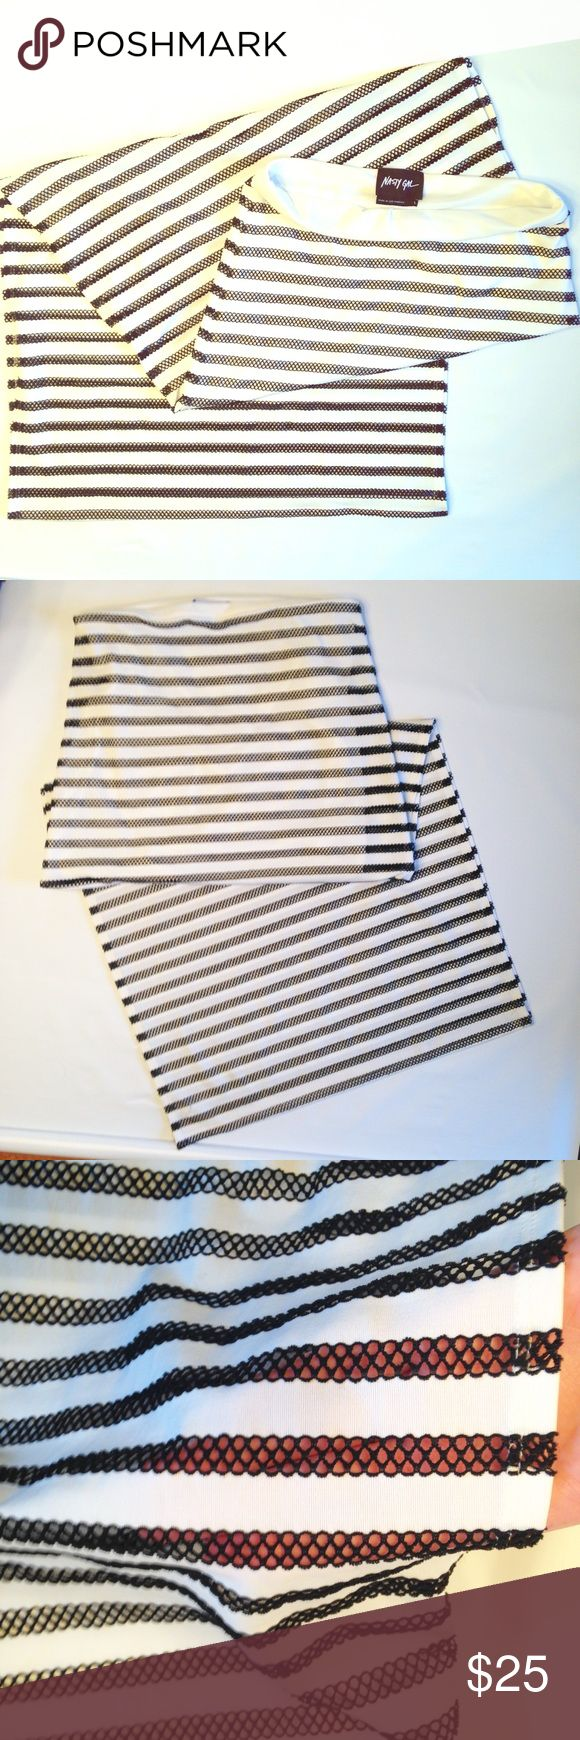 """Nasty Gal Skirt Sz Large Black & White Beautiful maxi skirt by Nast Gal in very good used condition. Size Large. Black and white horizontal stripes, partially sheer as pictured. Total length is 41"""". Sexy slits up both sides measure 26 1/2"""".  The slip lining at the top is 15 1/2"""". Reasonable offers are considered! Nasty Gal Skirts Maxi"""